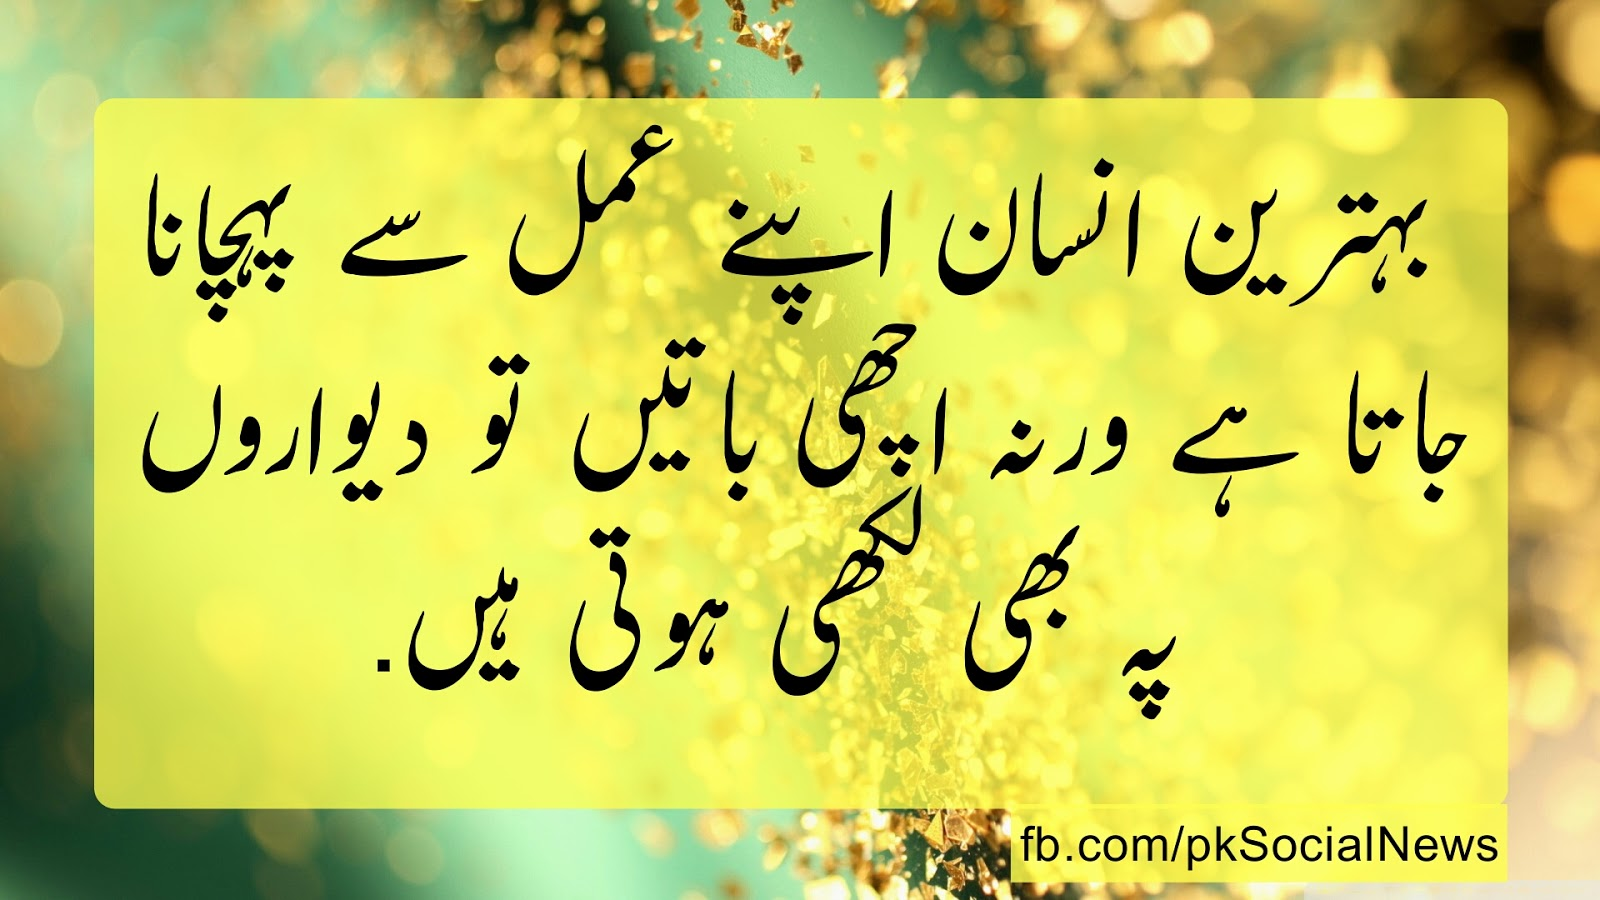 Sad Quotes About Love In Urdu Facebook : urdu sayings urdu love quotes urdu funny quotes urdu sad quotes urdu ...